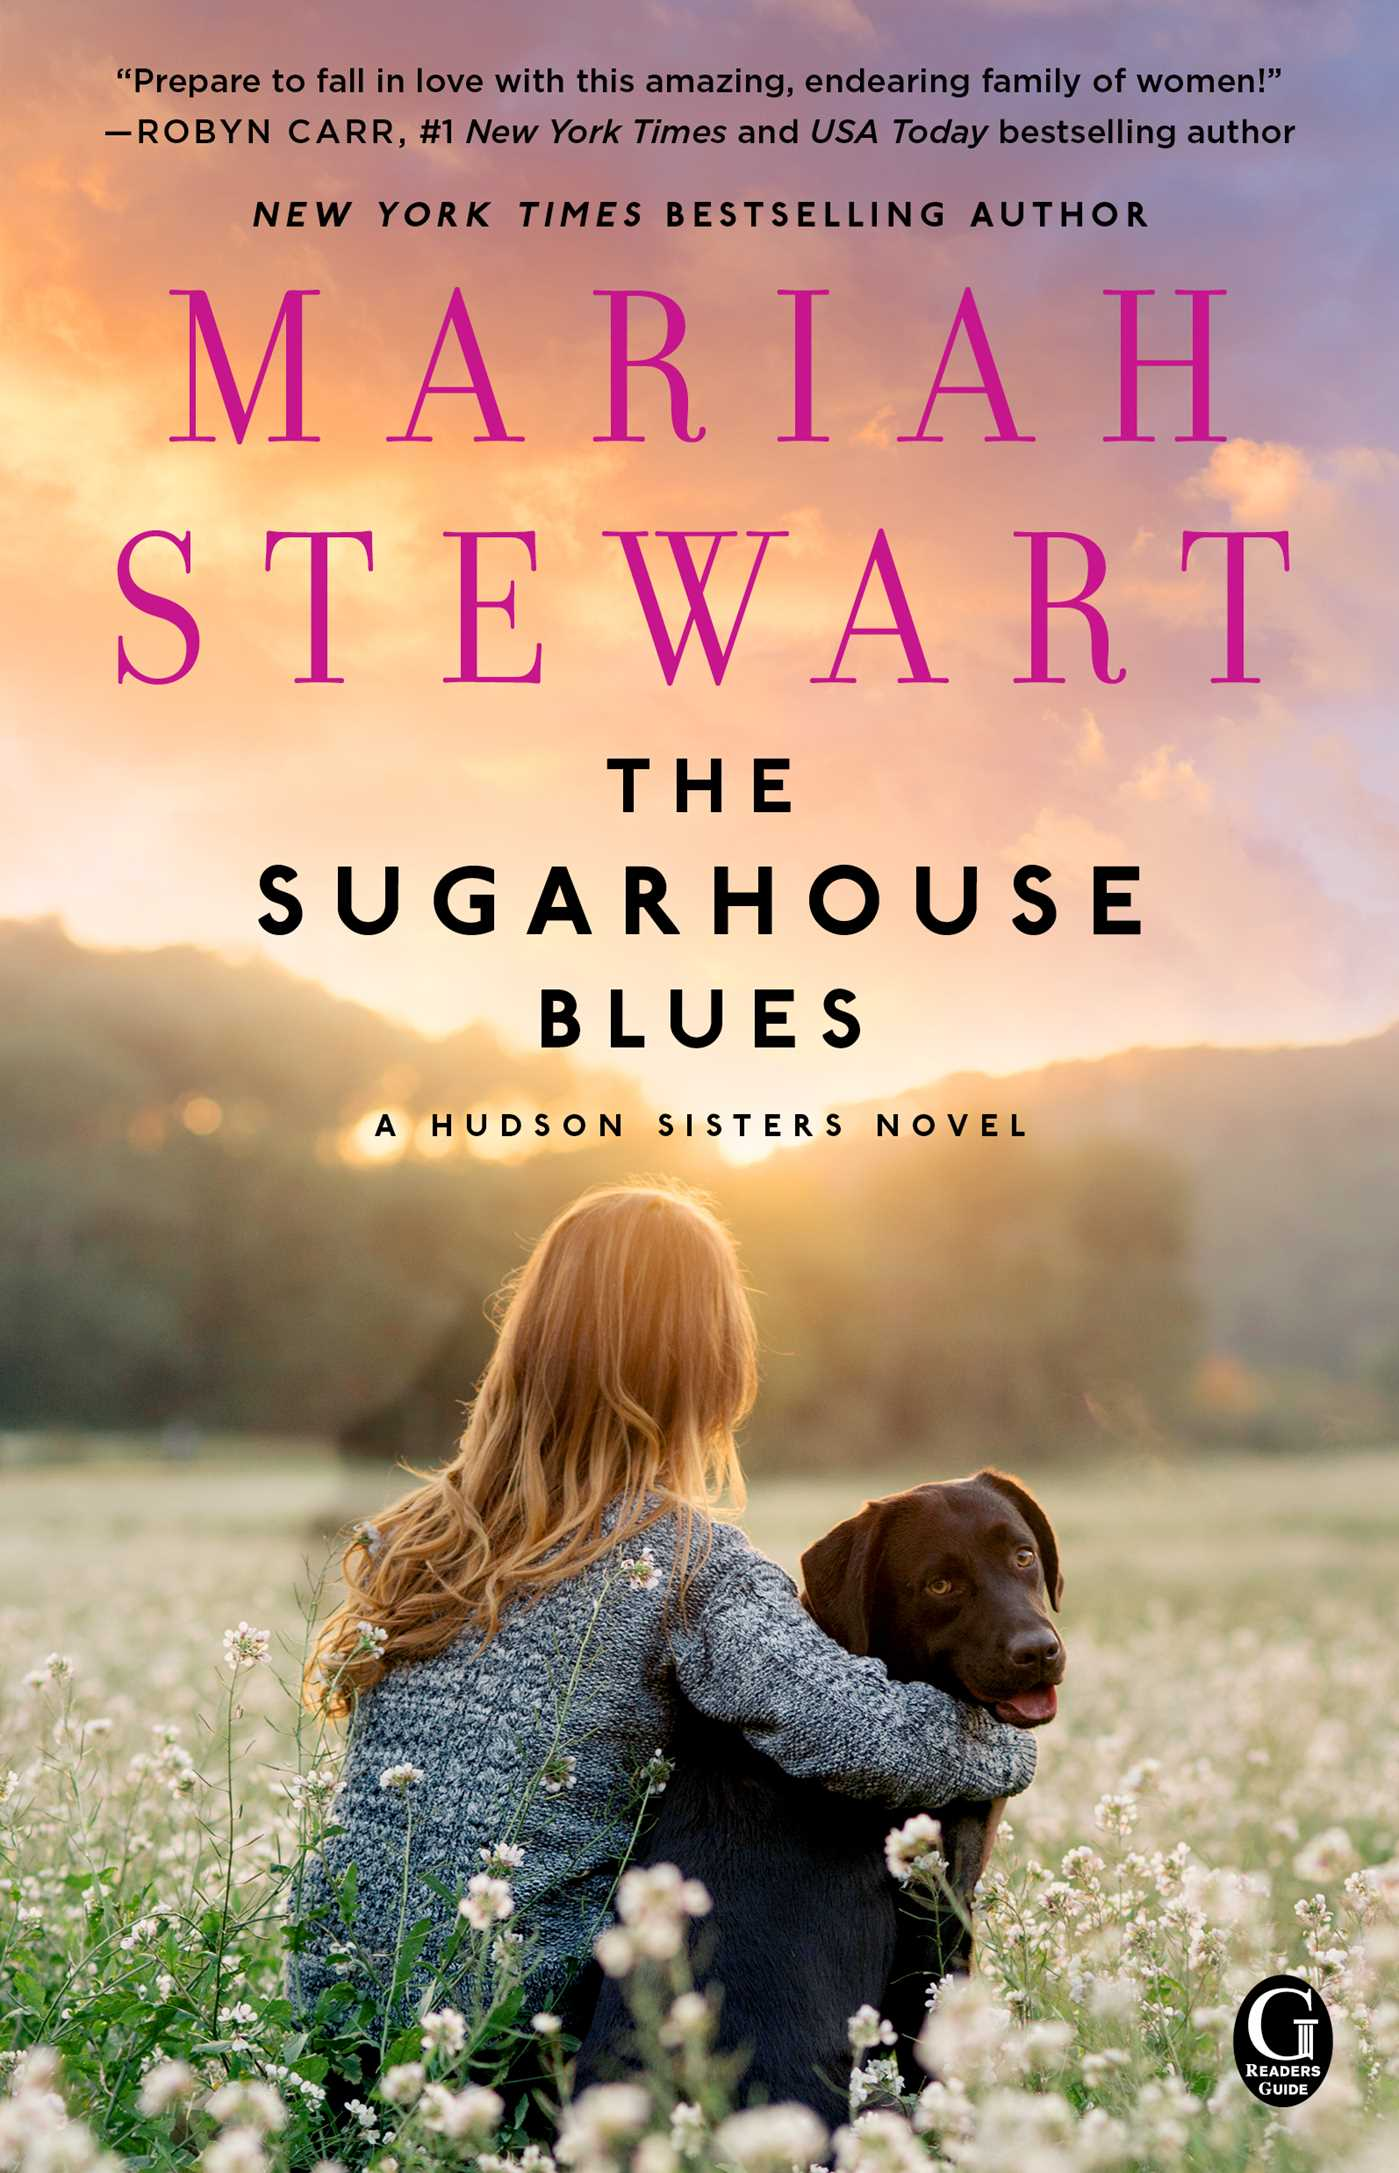 The sugarhouse blues 9781501144929 hr